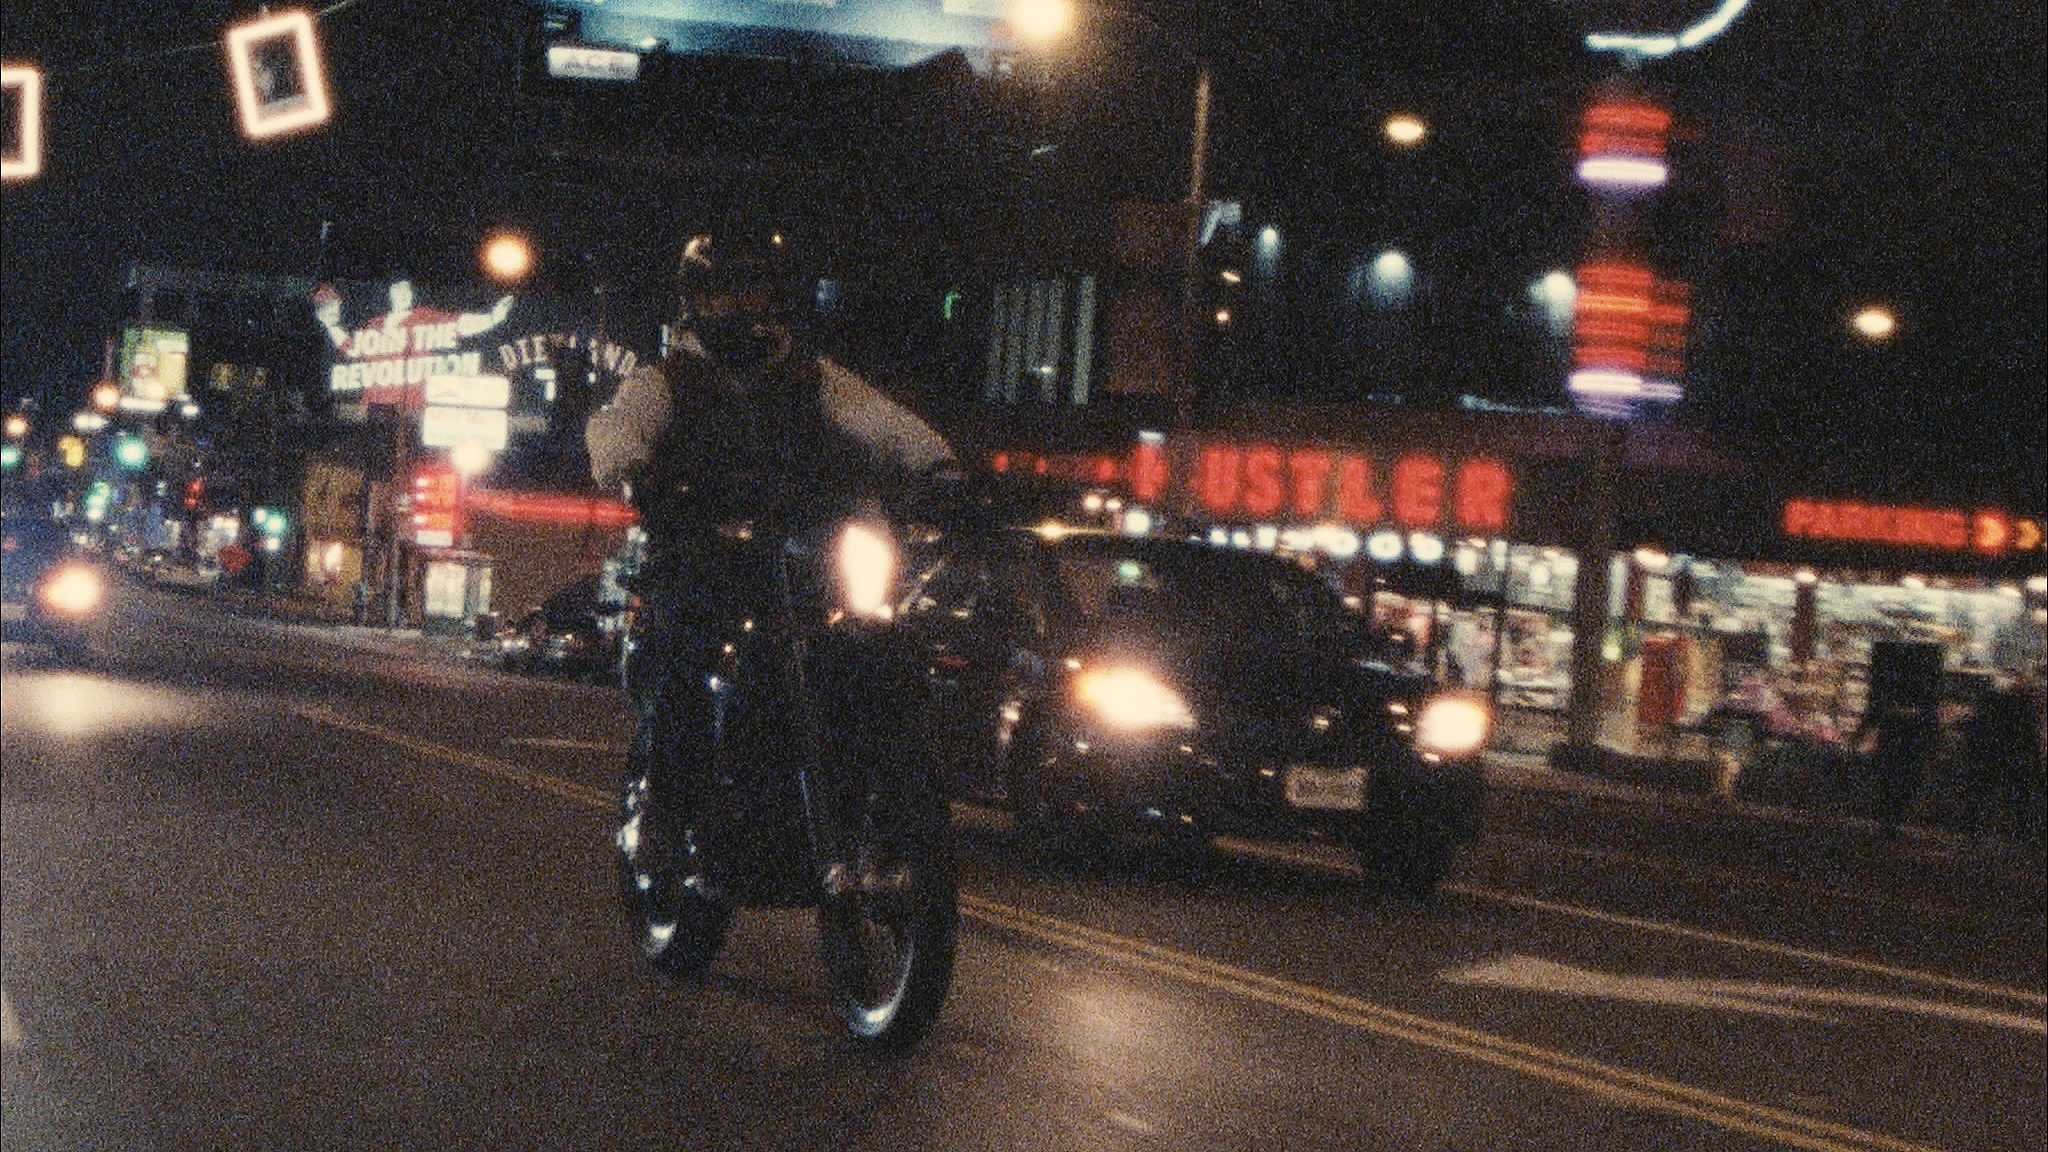 Nightlife - 16mm